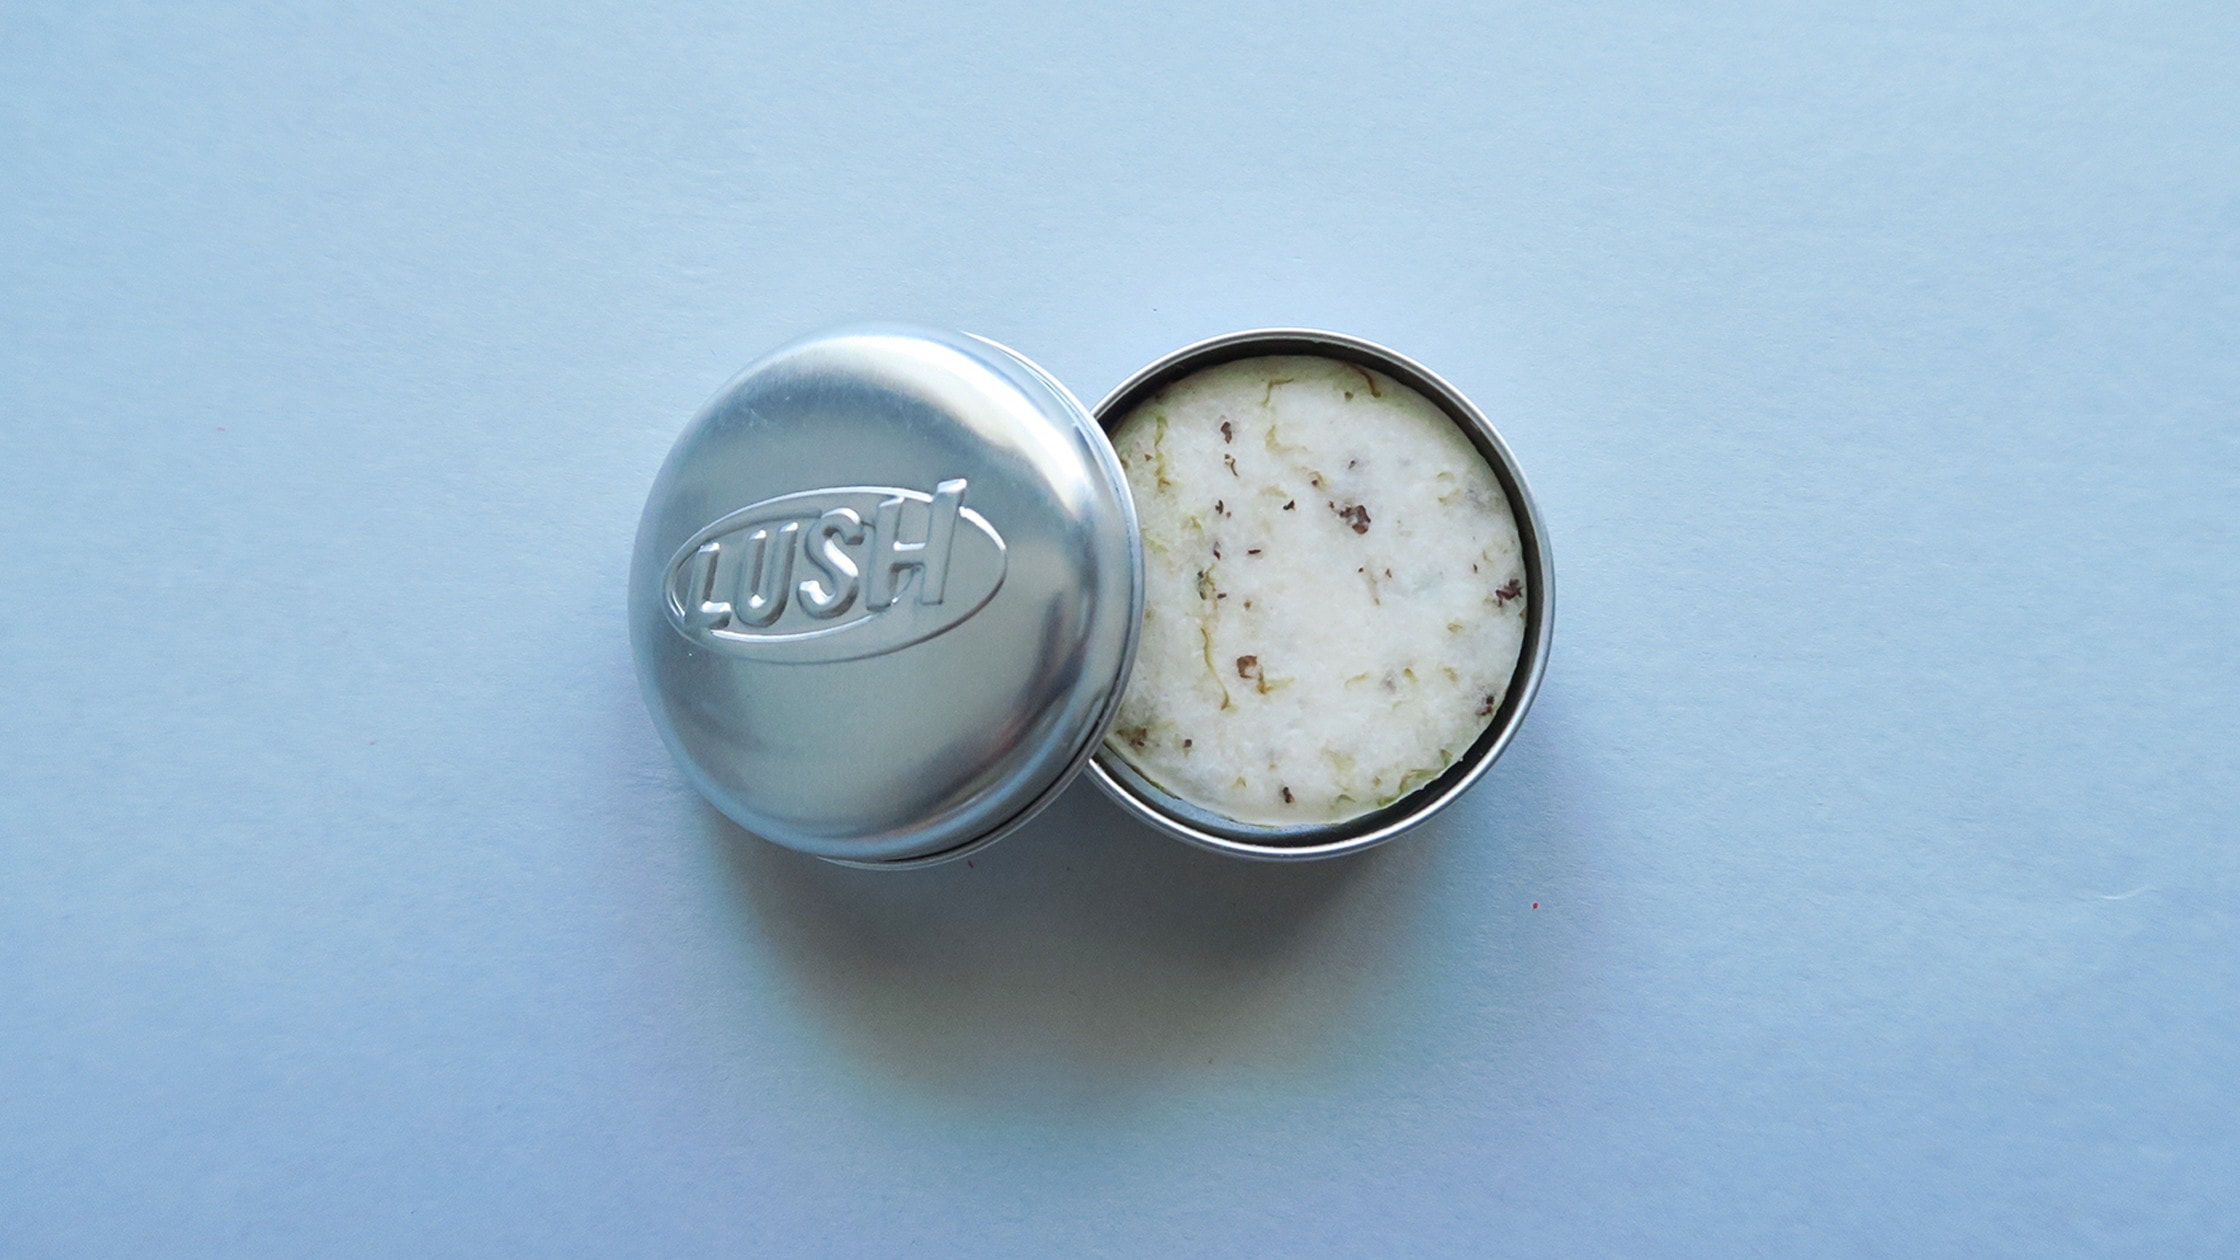 Lush Tin to help keep your bar dry and the scent a little less strong in your bag.